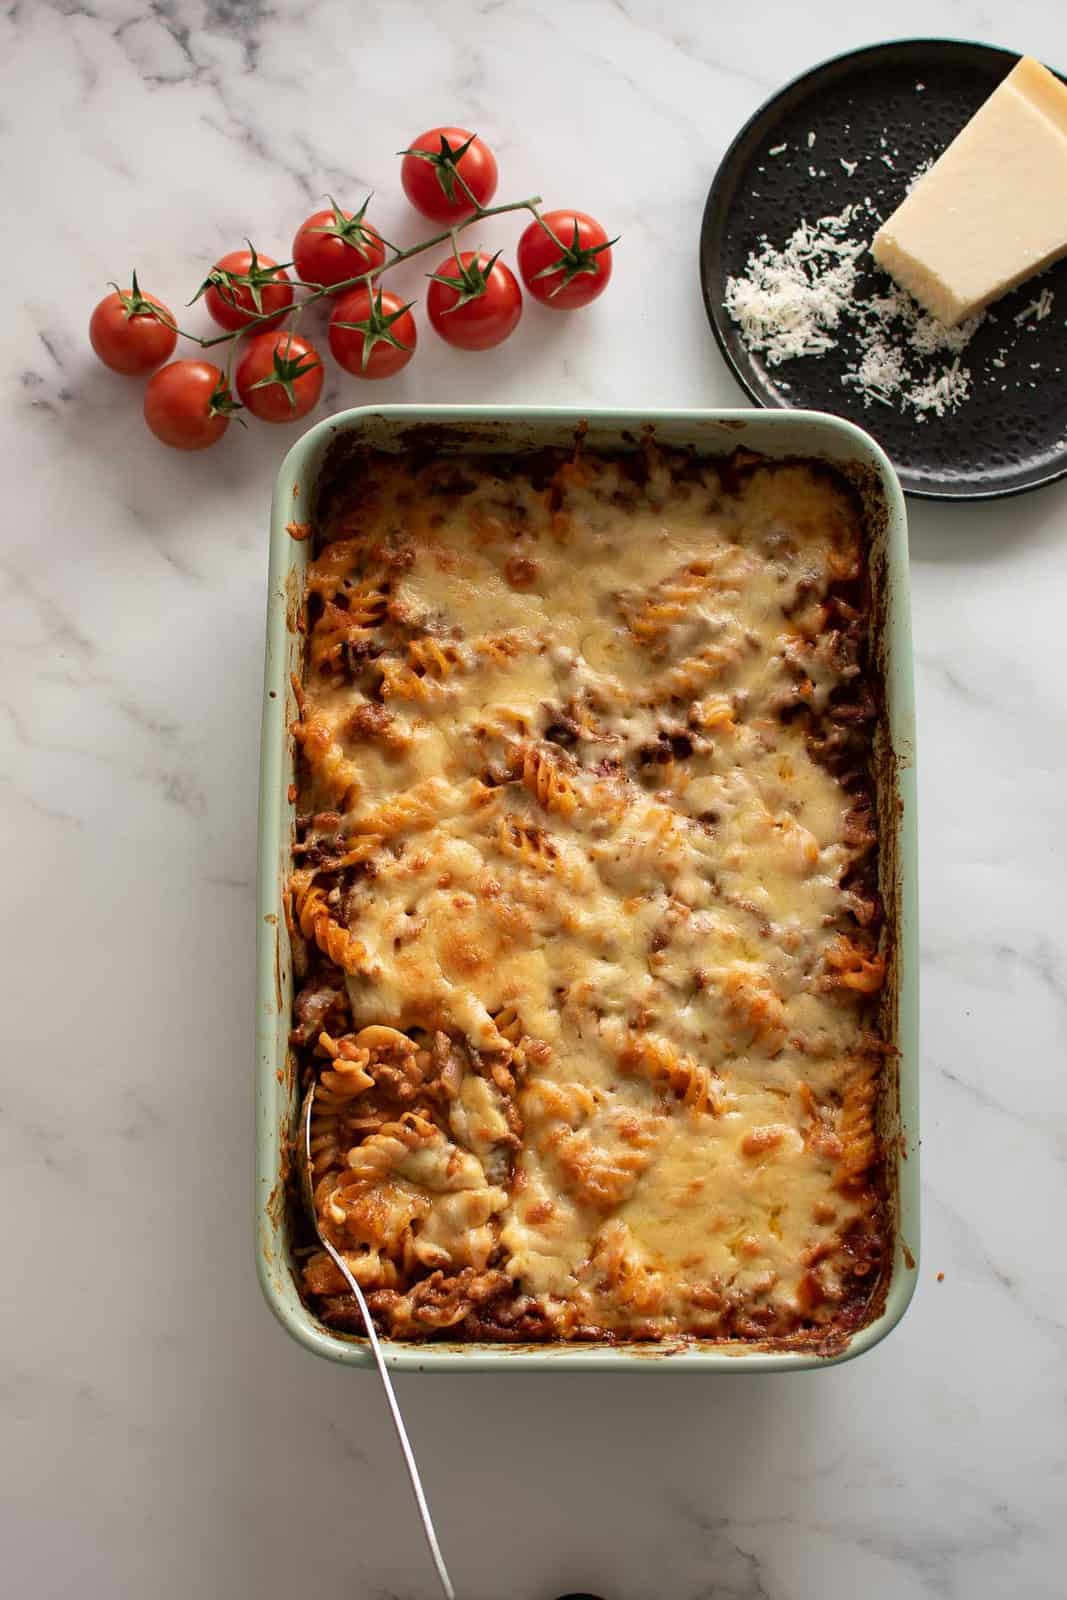 Hamburger casserole on a table, with cherry tomatoes and parmesan cheese on the side.